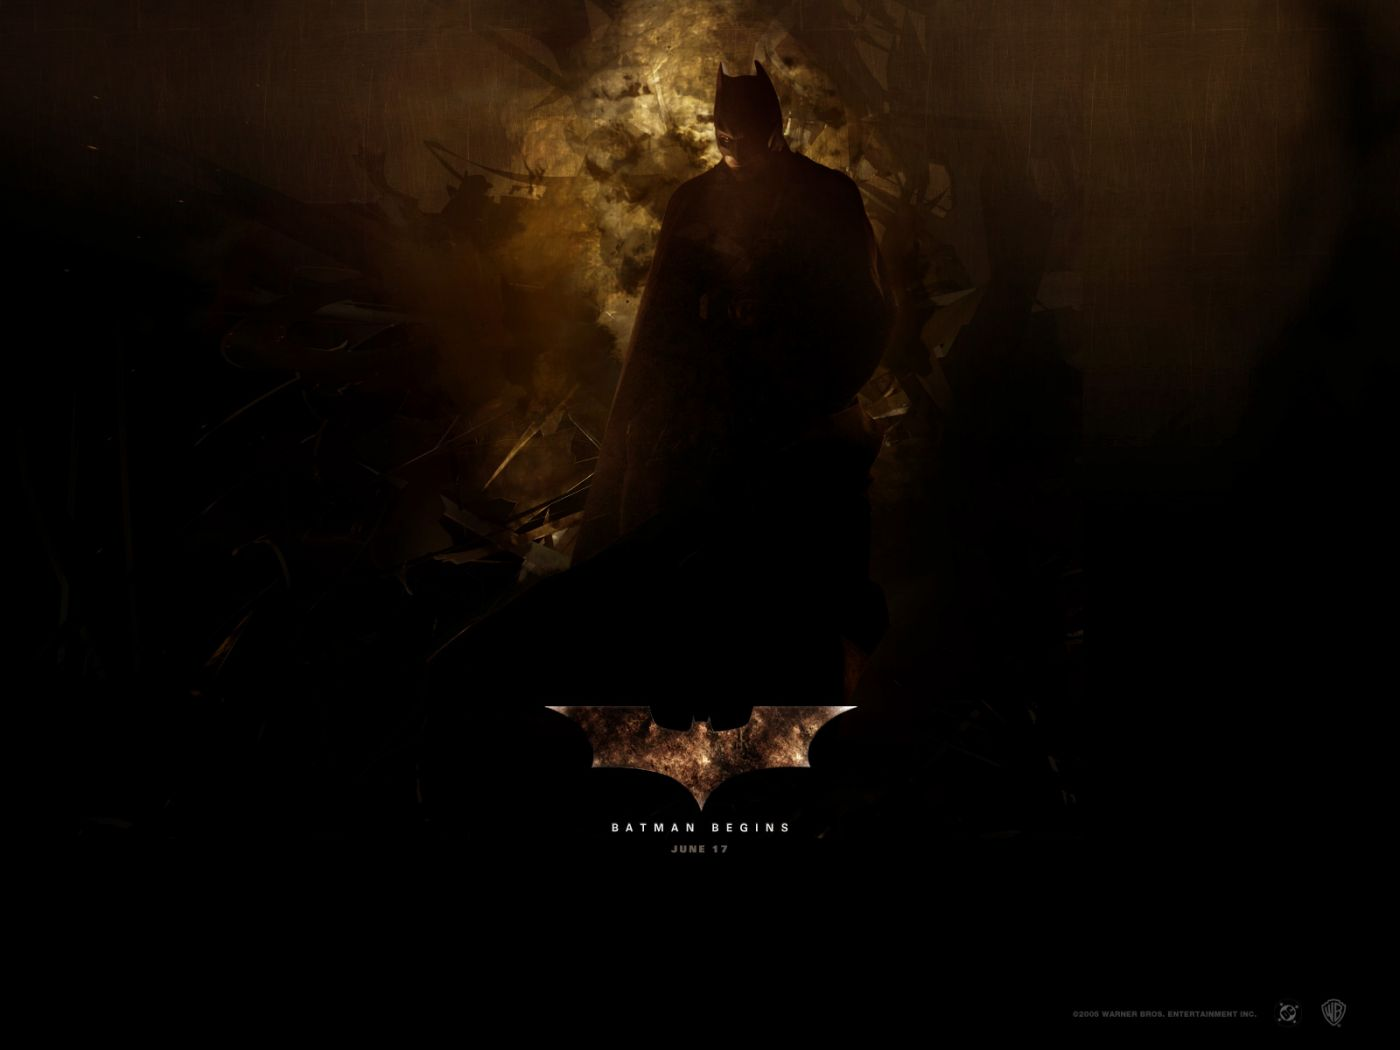 Batman Begins June 17 Poster Wallpaper 1400x1050